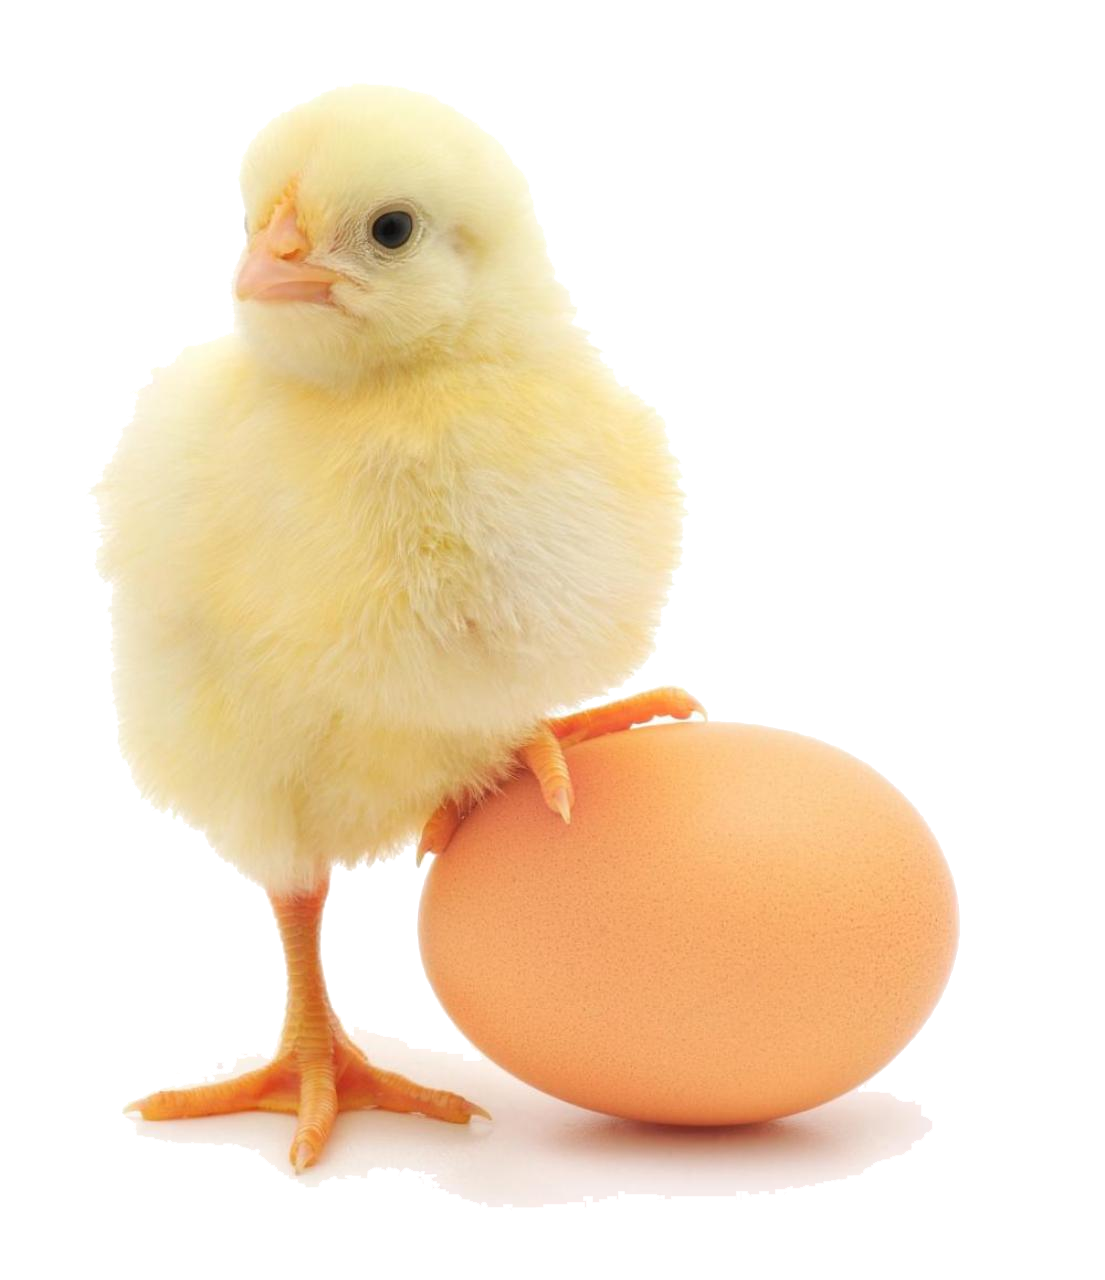 Baby chicken png. Free download arts